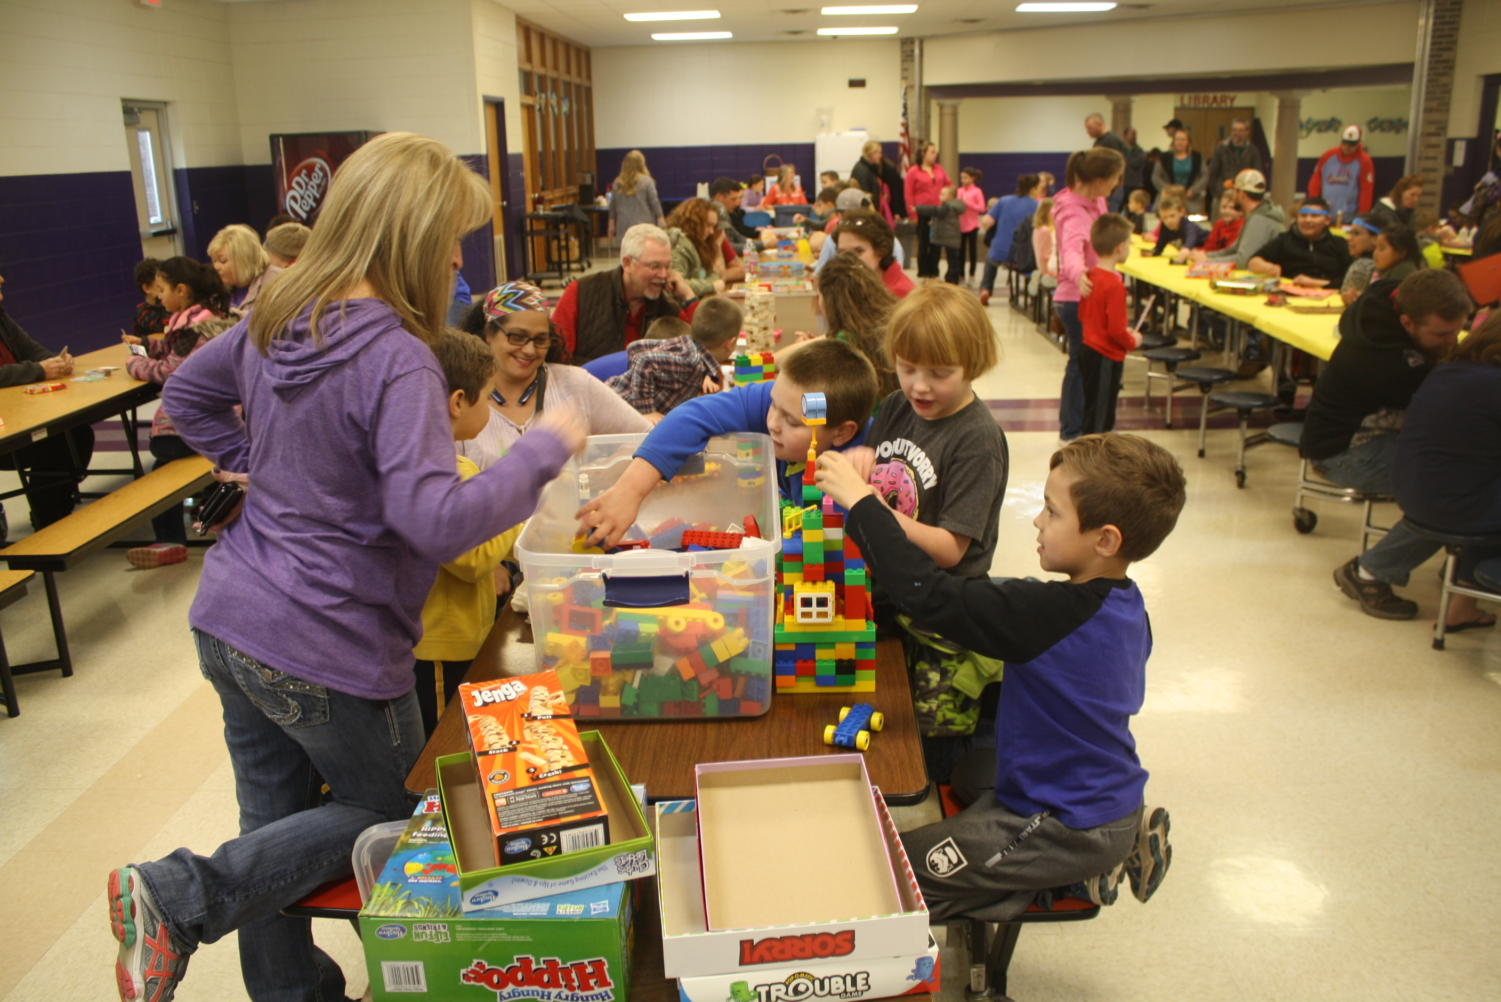 Students and parents alike enjoy Family Fun Night in the elementary